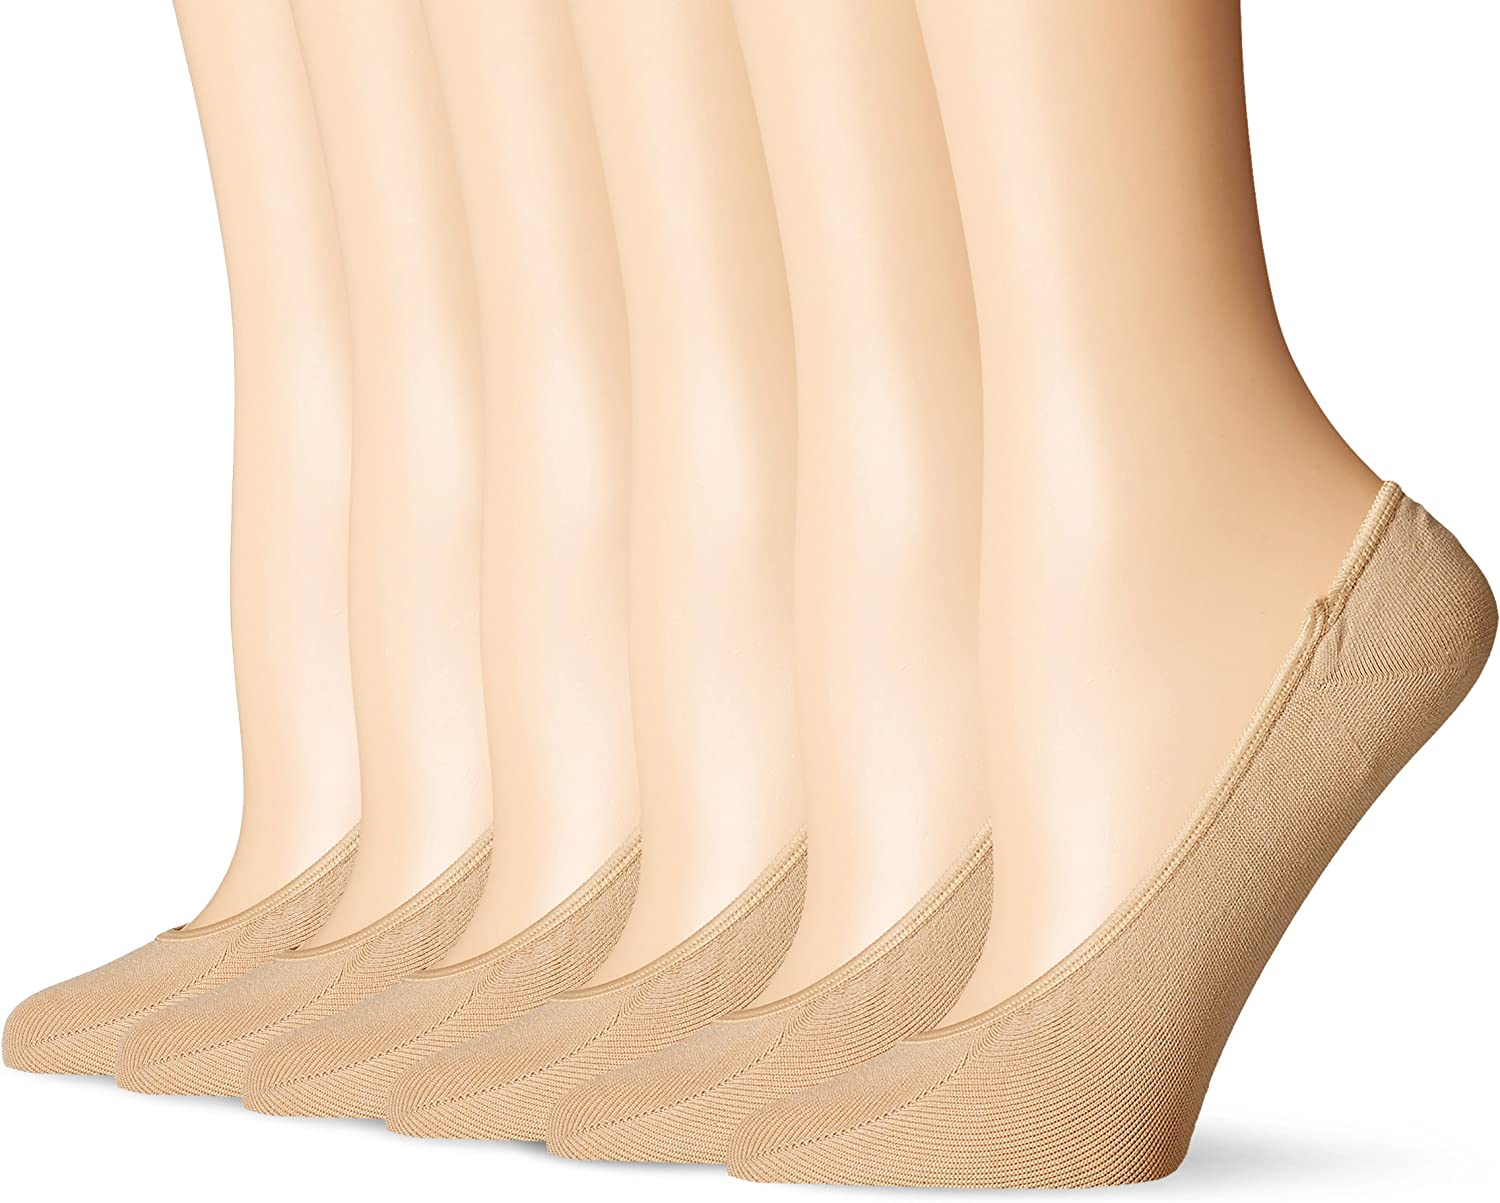 PEDS Women's Ultra Low Microfiber Liner with Gel Tab